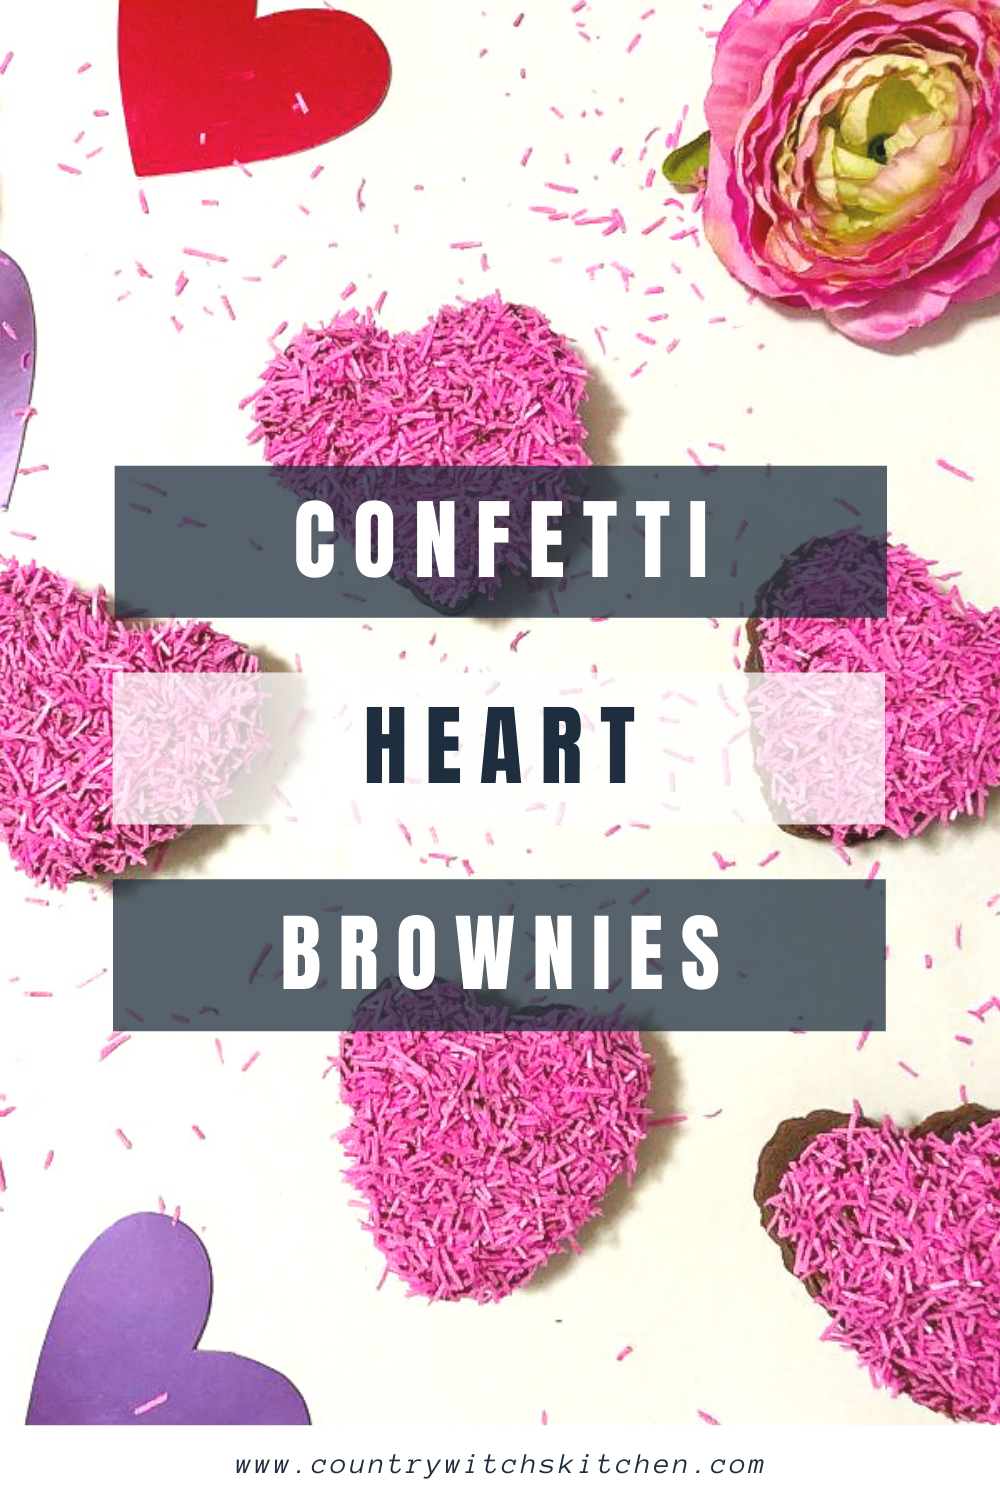 This simple Valentine's Day brownie is a great treat for kids of all ages and it comes together in just minutes! #brownie #valentinesday #heartshaped #chocolateheart